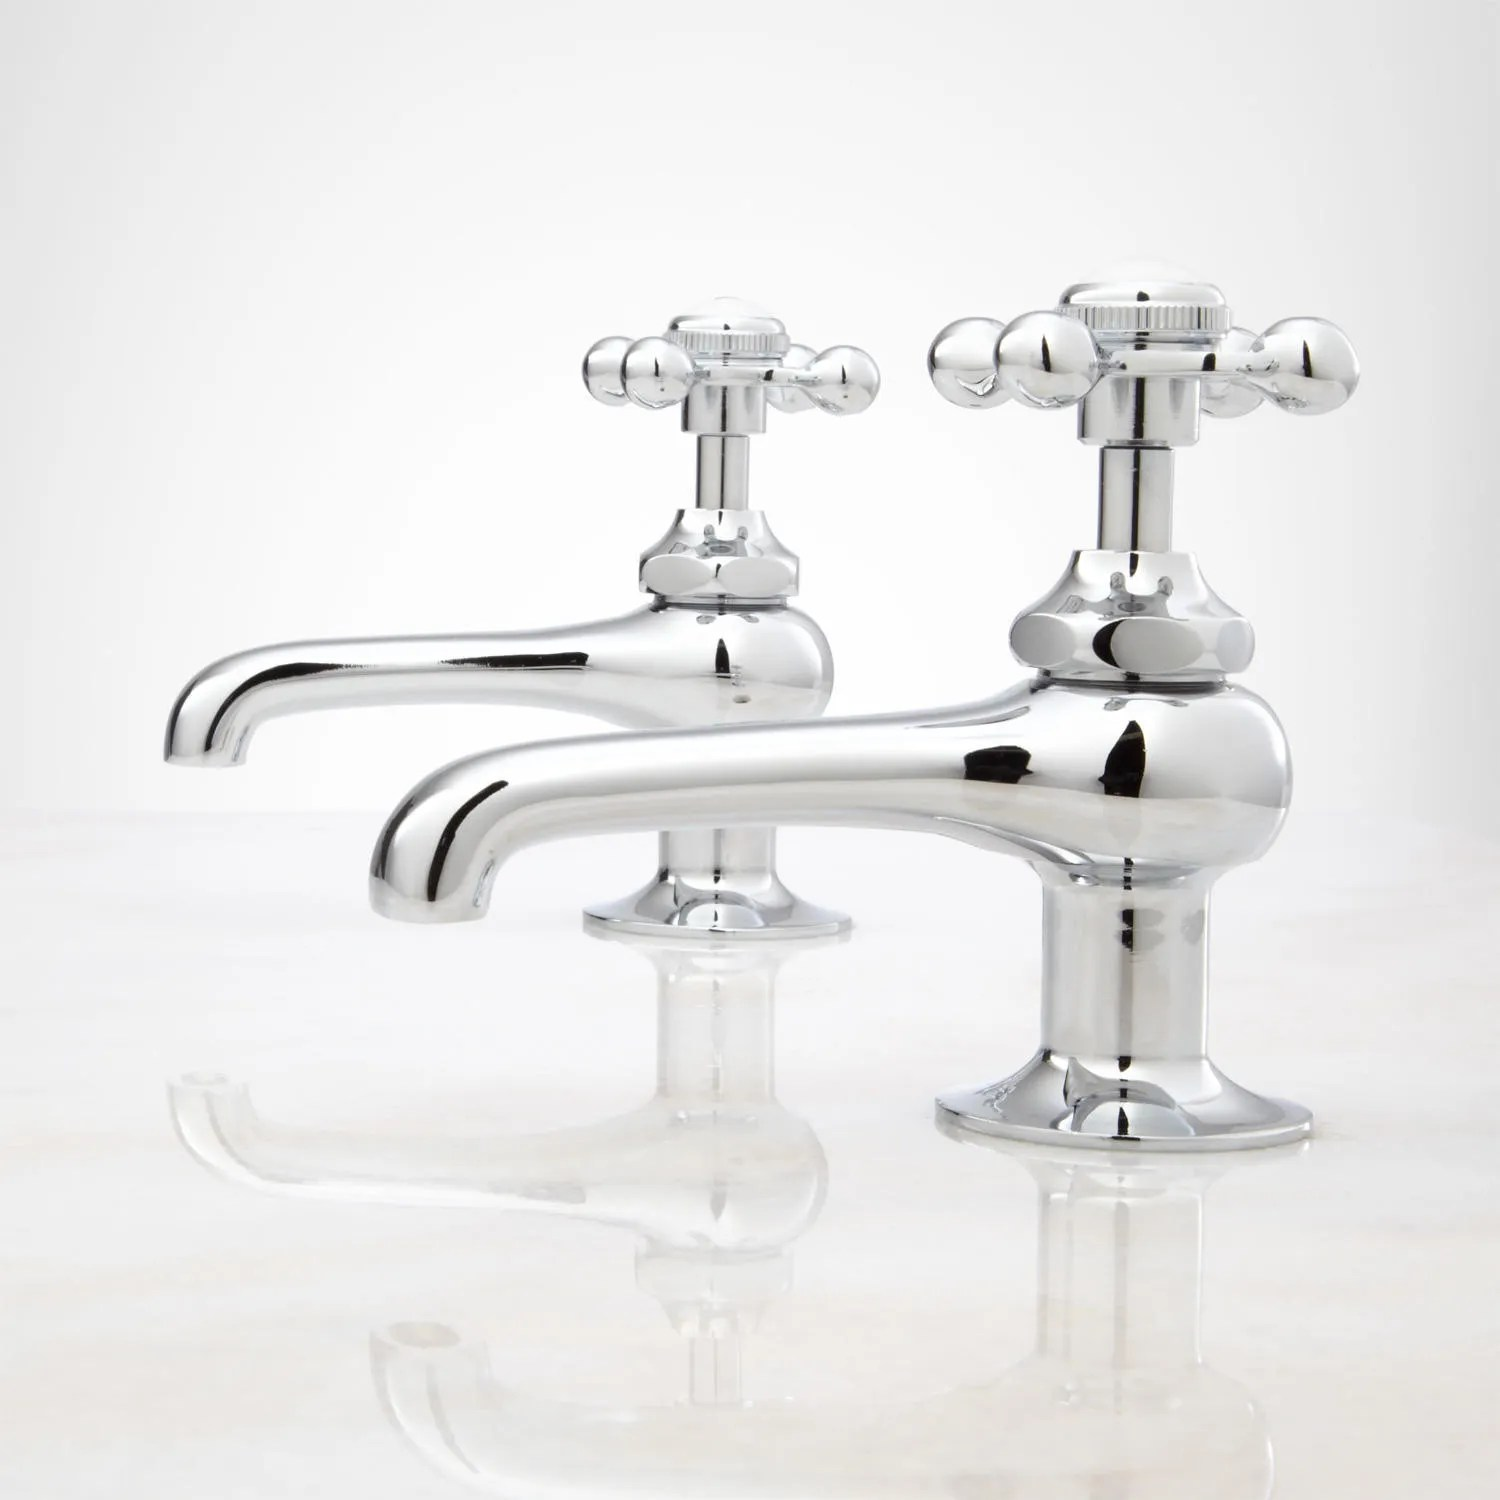 Reproduction CrossHandle Sink Faucets  Bathroom Sink